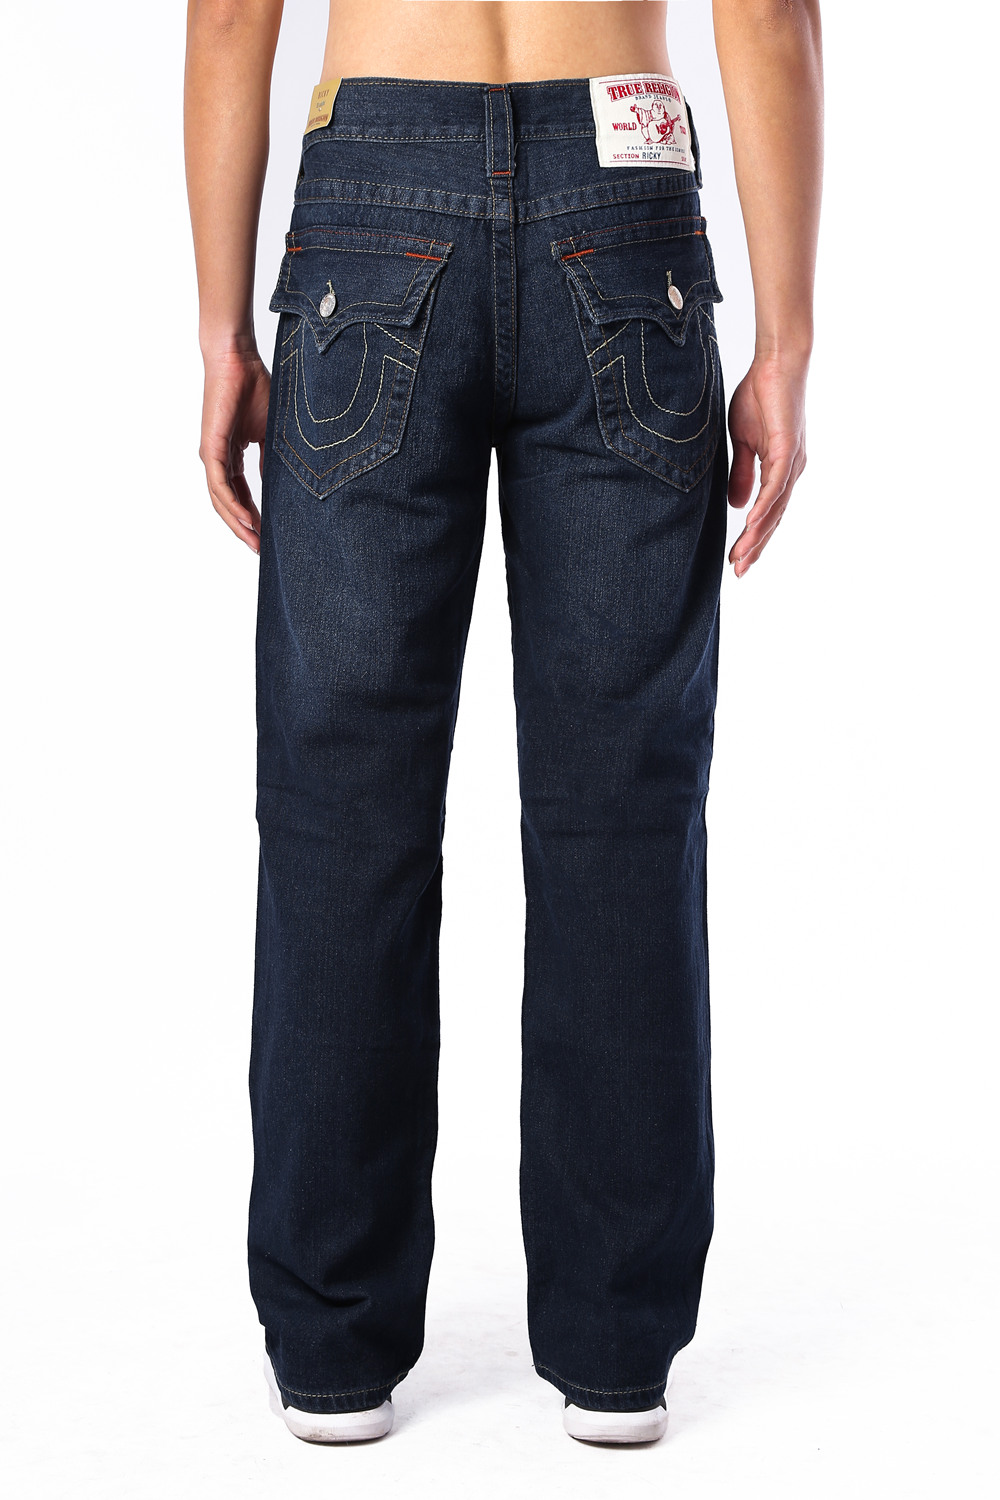 Navy True Religion Mens Jeans Back